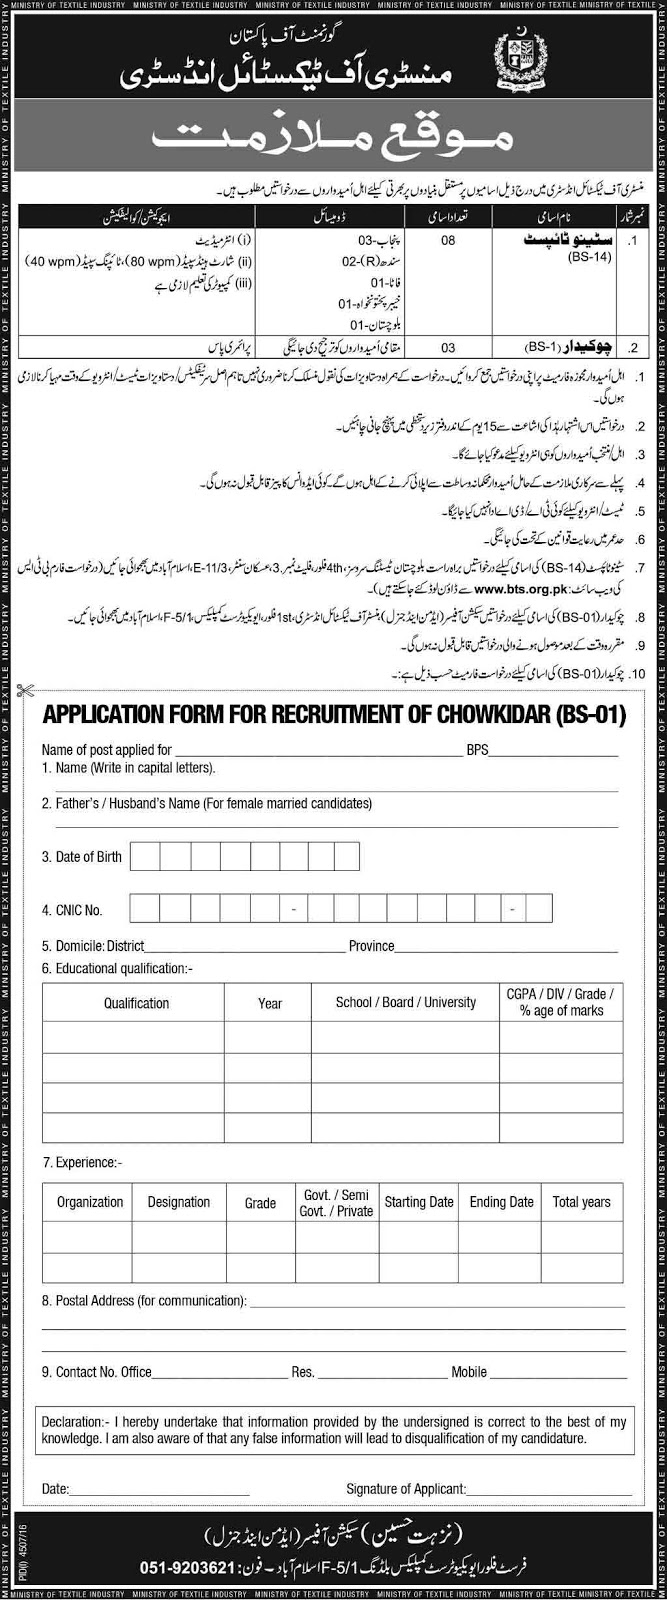 Stenotypists Jobs In Ministry of Textile Industry in Islamabad